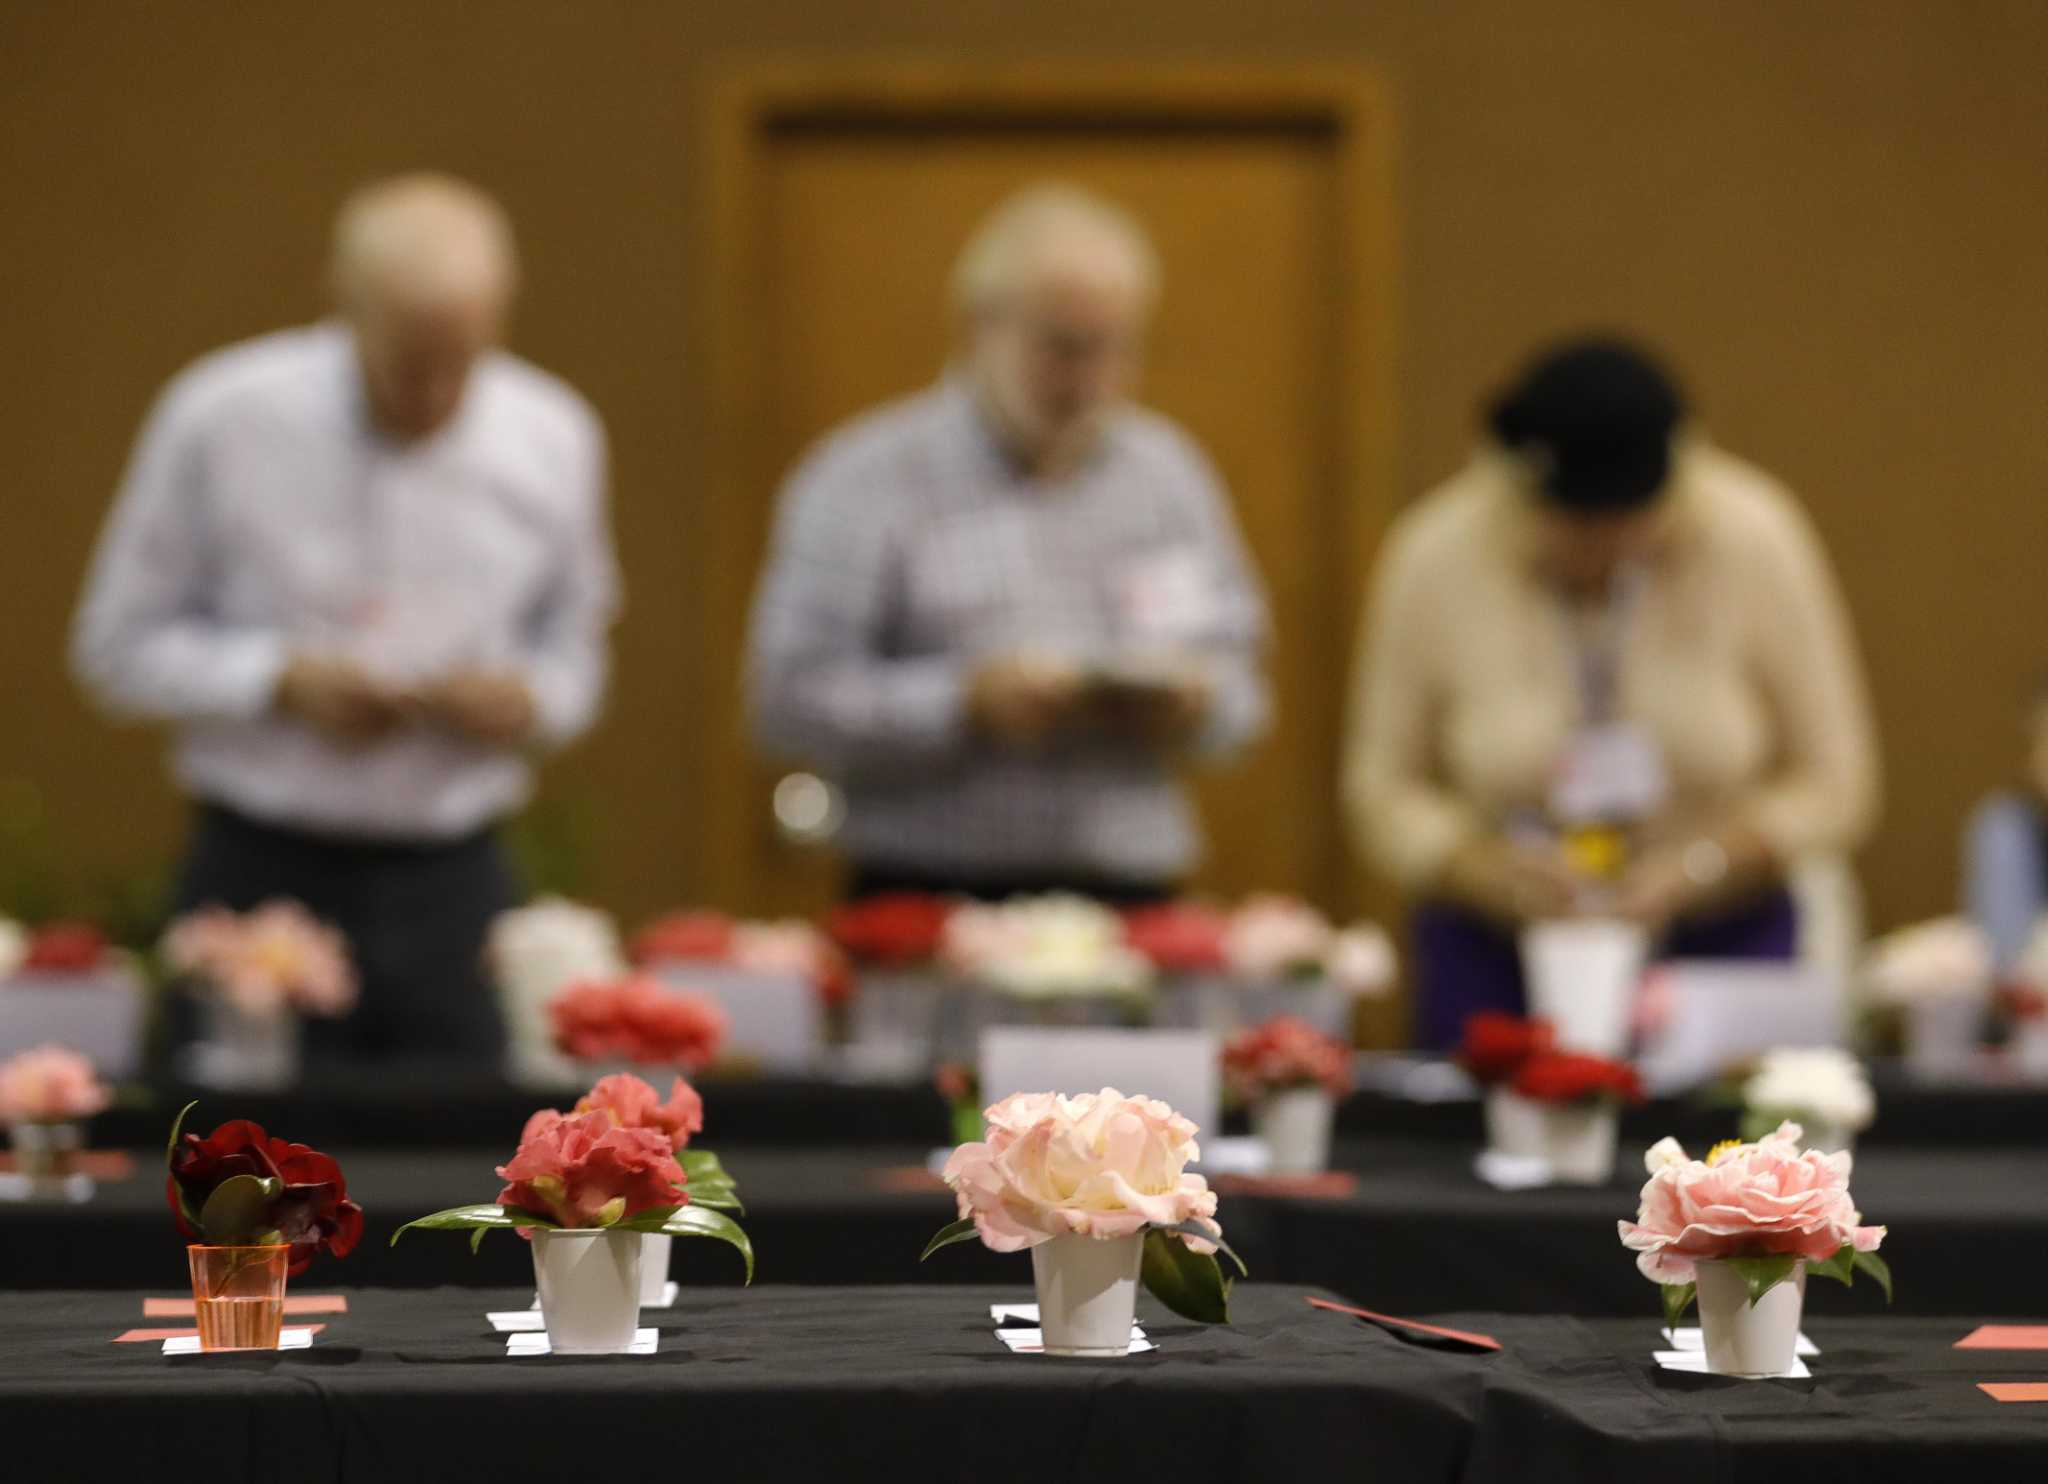 Conroe man enters about 100 Camellias at society's flower show